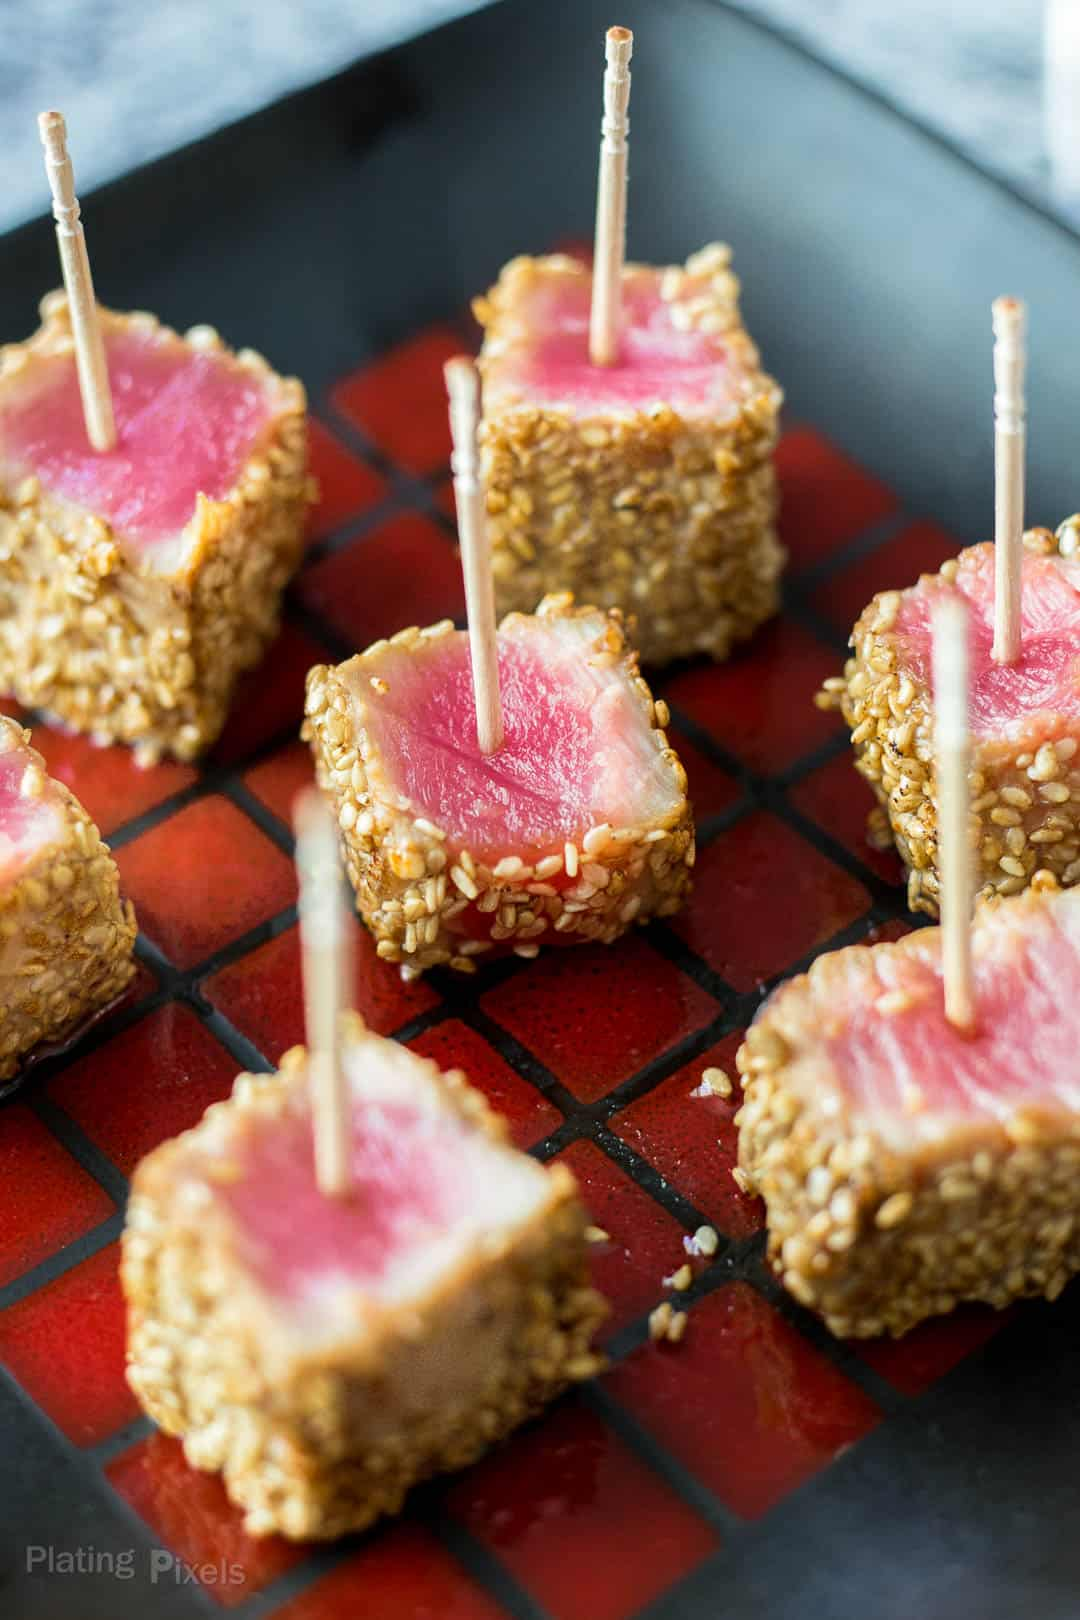 Seared Sesame Seared Ahi Tuna Bites plated and ready to serve